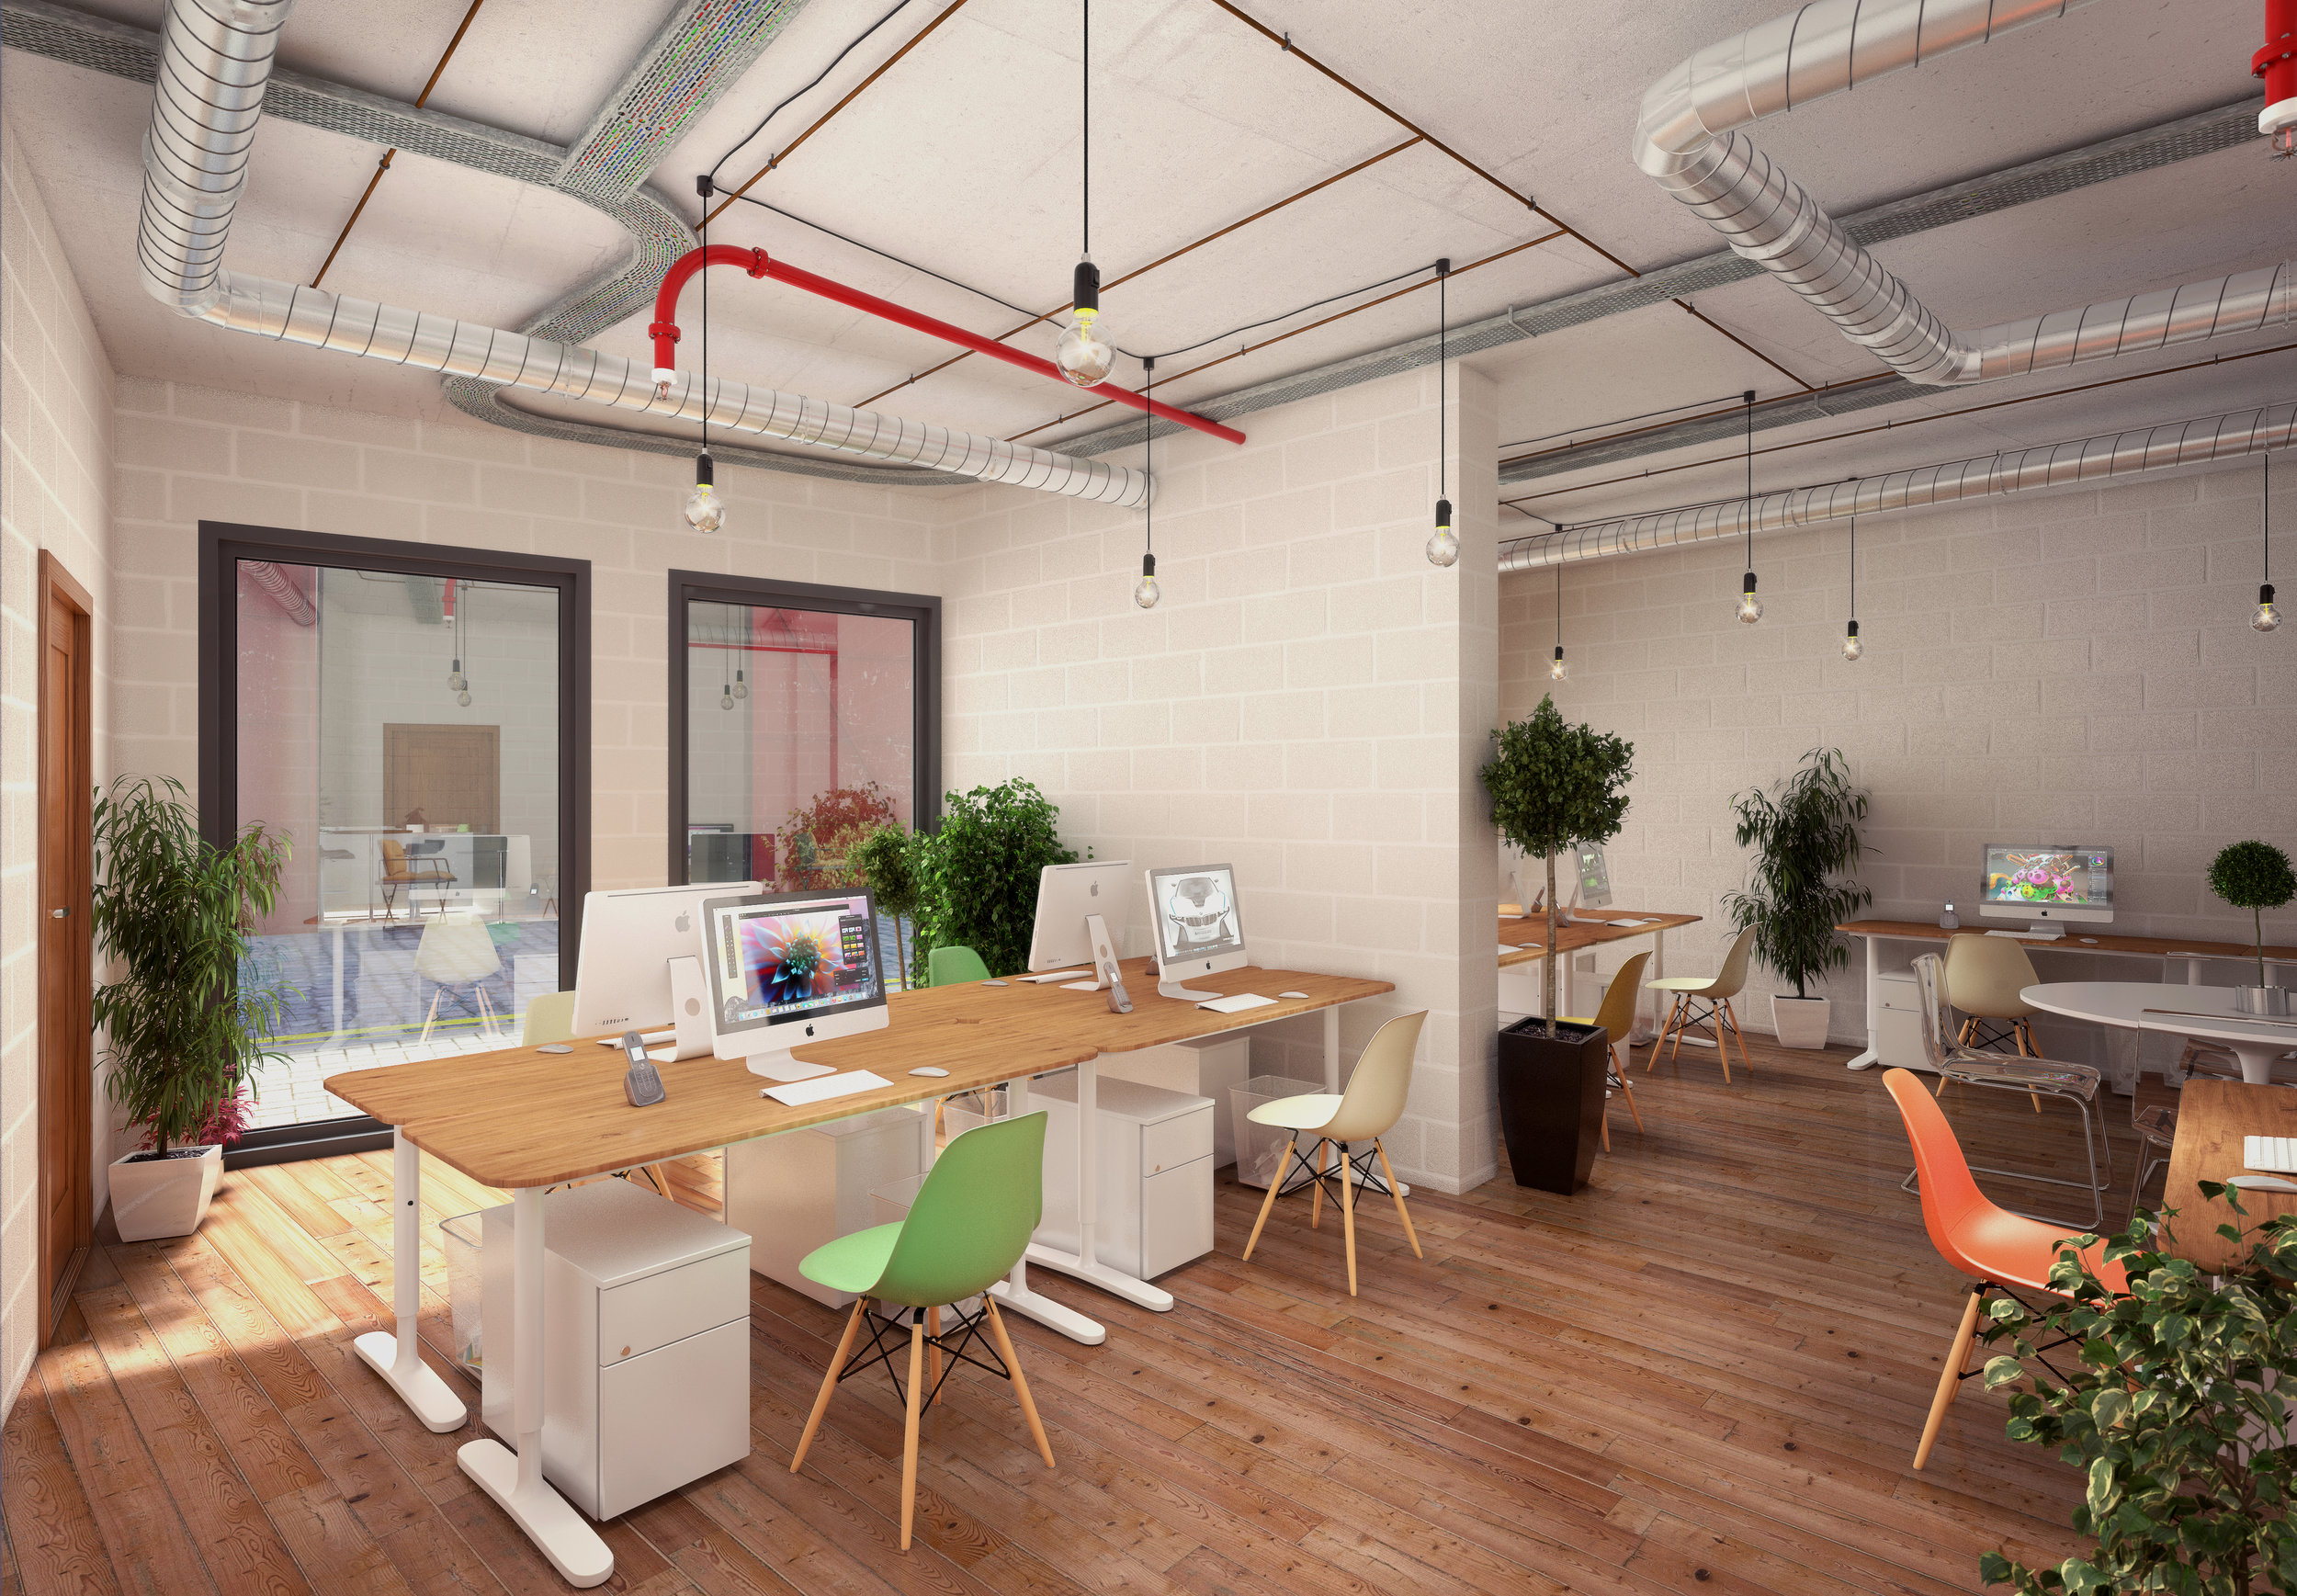 QUAD WORKSPACES - 2 WORKSPACES TO BUY IN THE HEART OF HOXTON